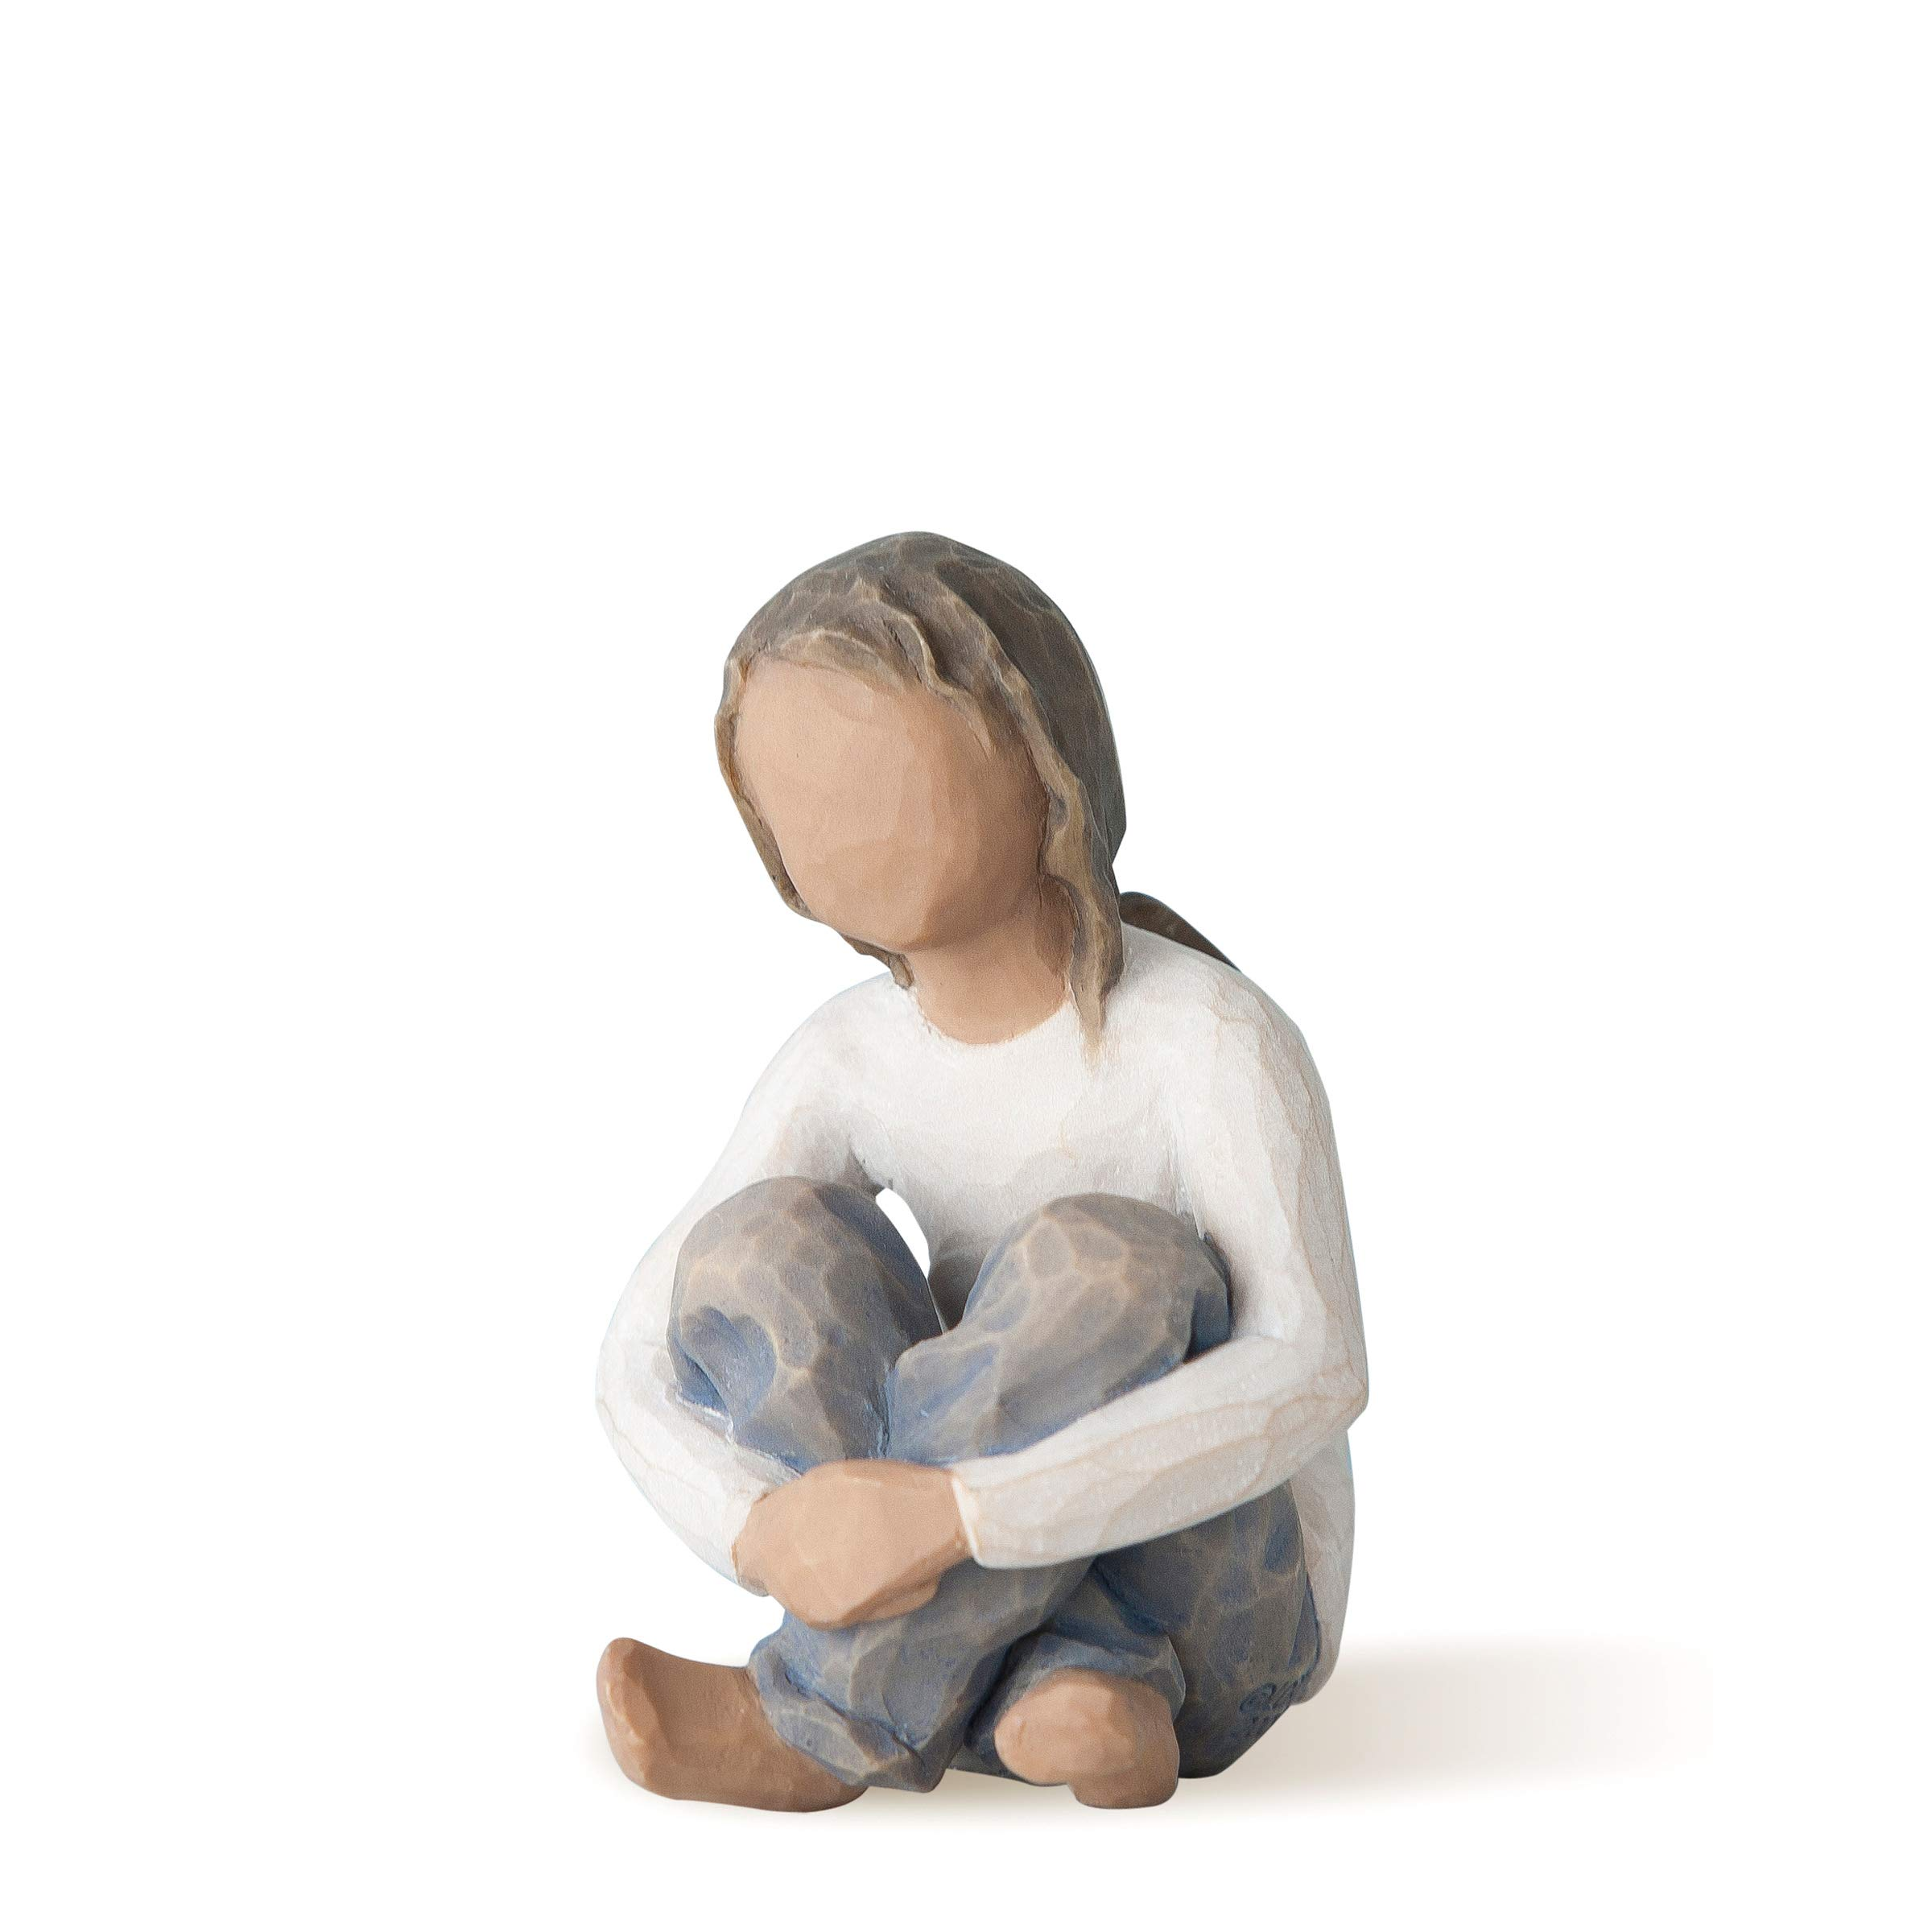 Willow Tree Spirited Child (Darker Skin Tone & Hair Color), Sculpted Hand-Painted Figure